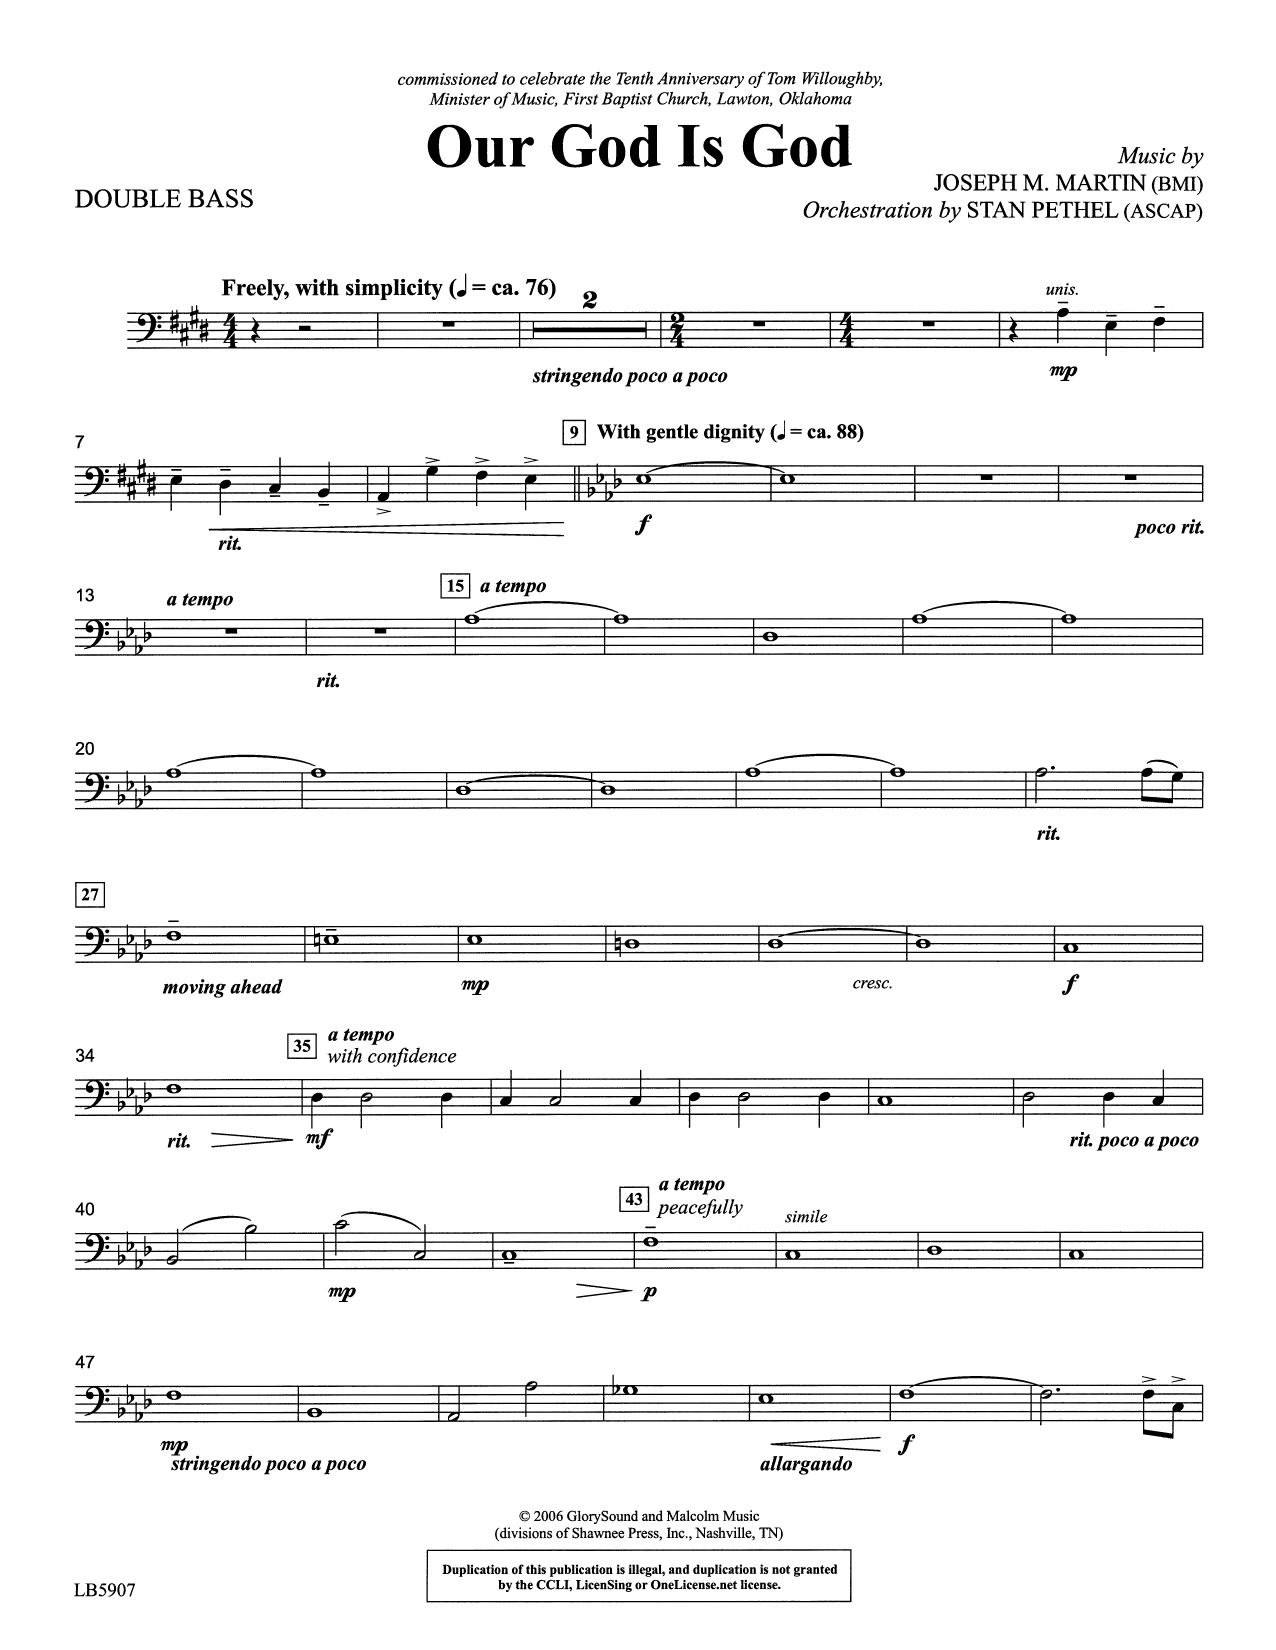 Our God Is God - Double Bass Sheet Music